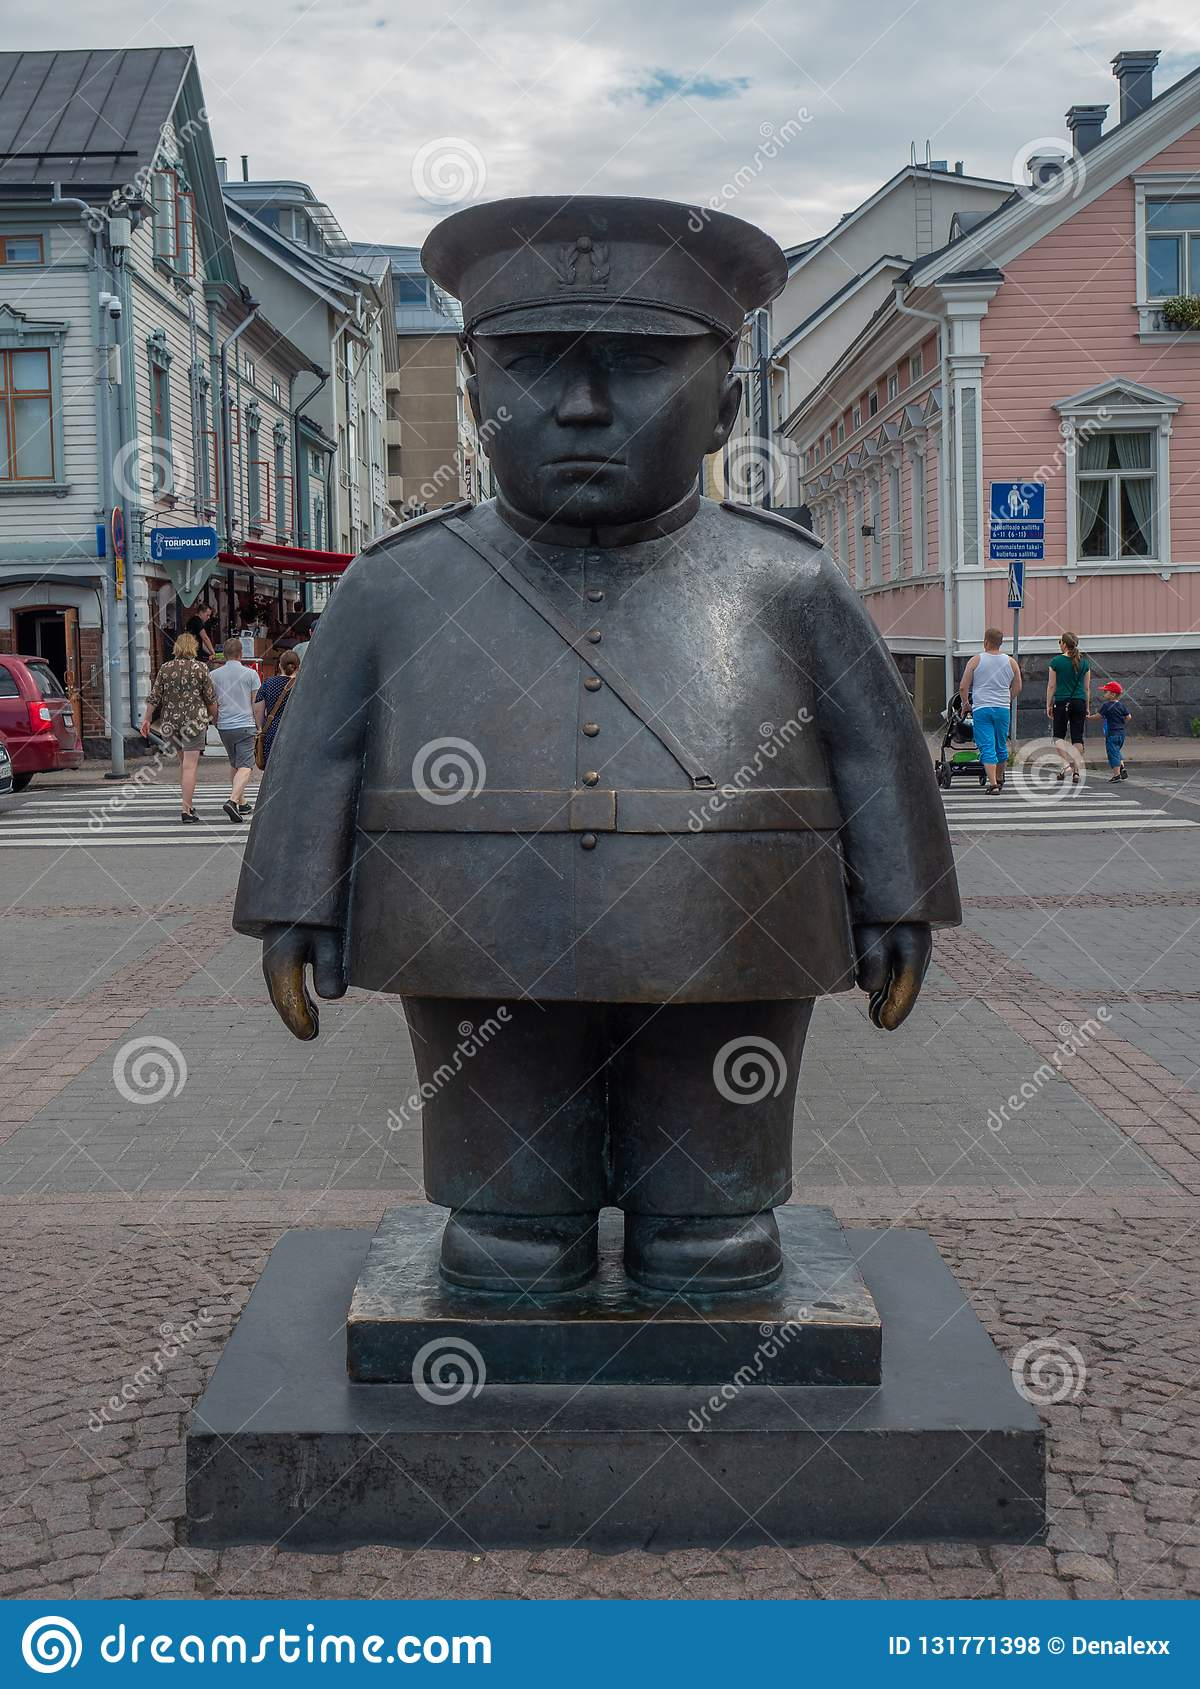 Image of the Topolliisi a bronze statue of a policeman, made by the sculptor Kaarlo Mikkonen